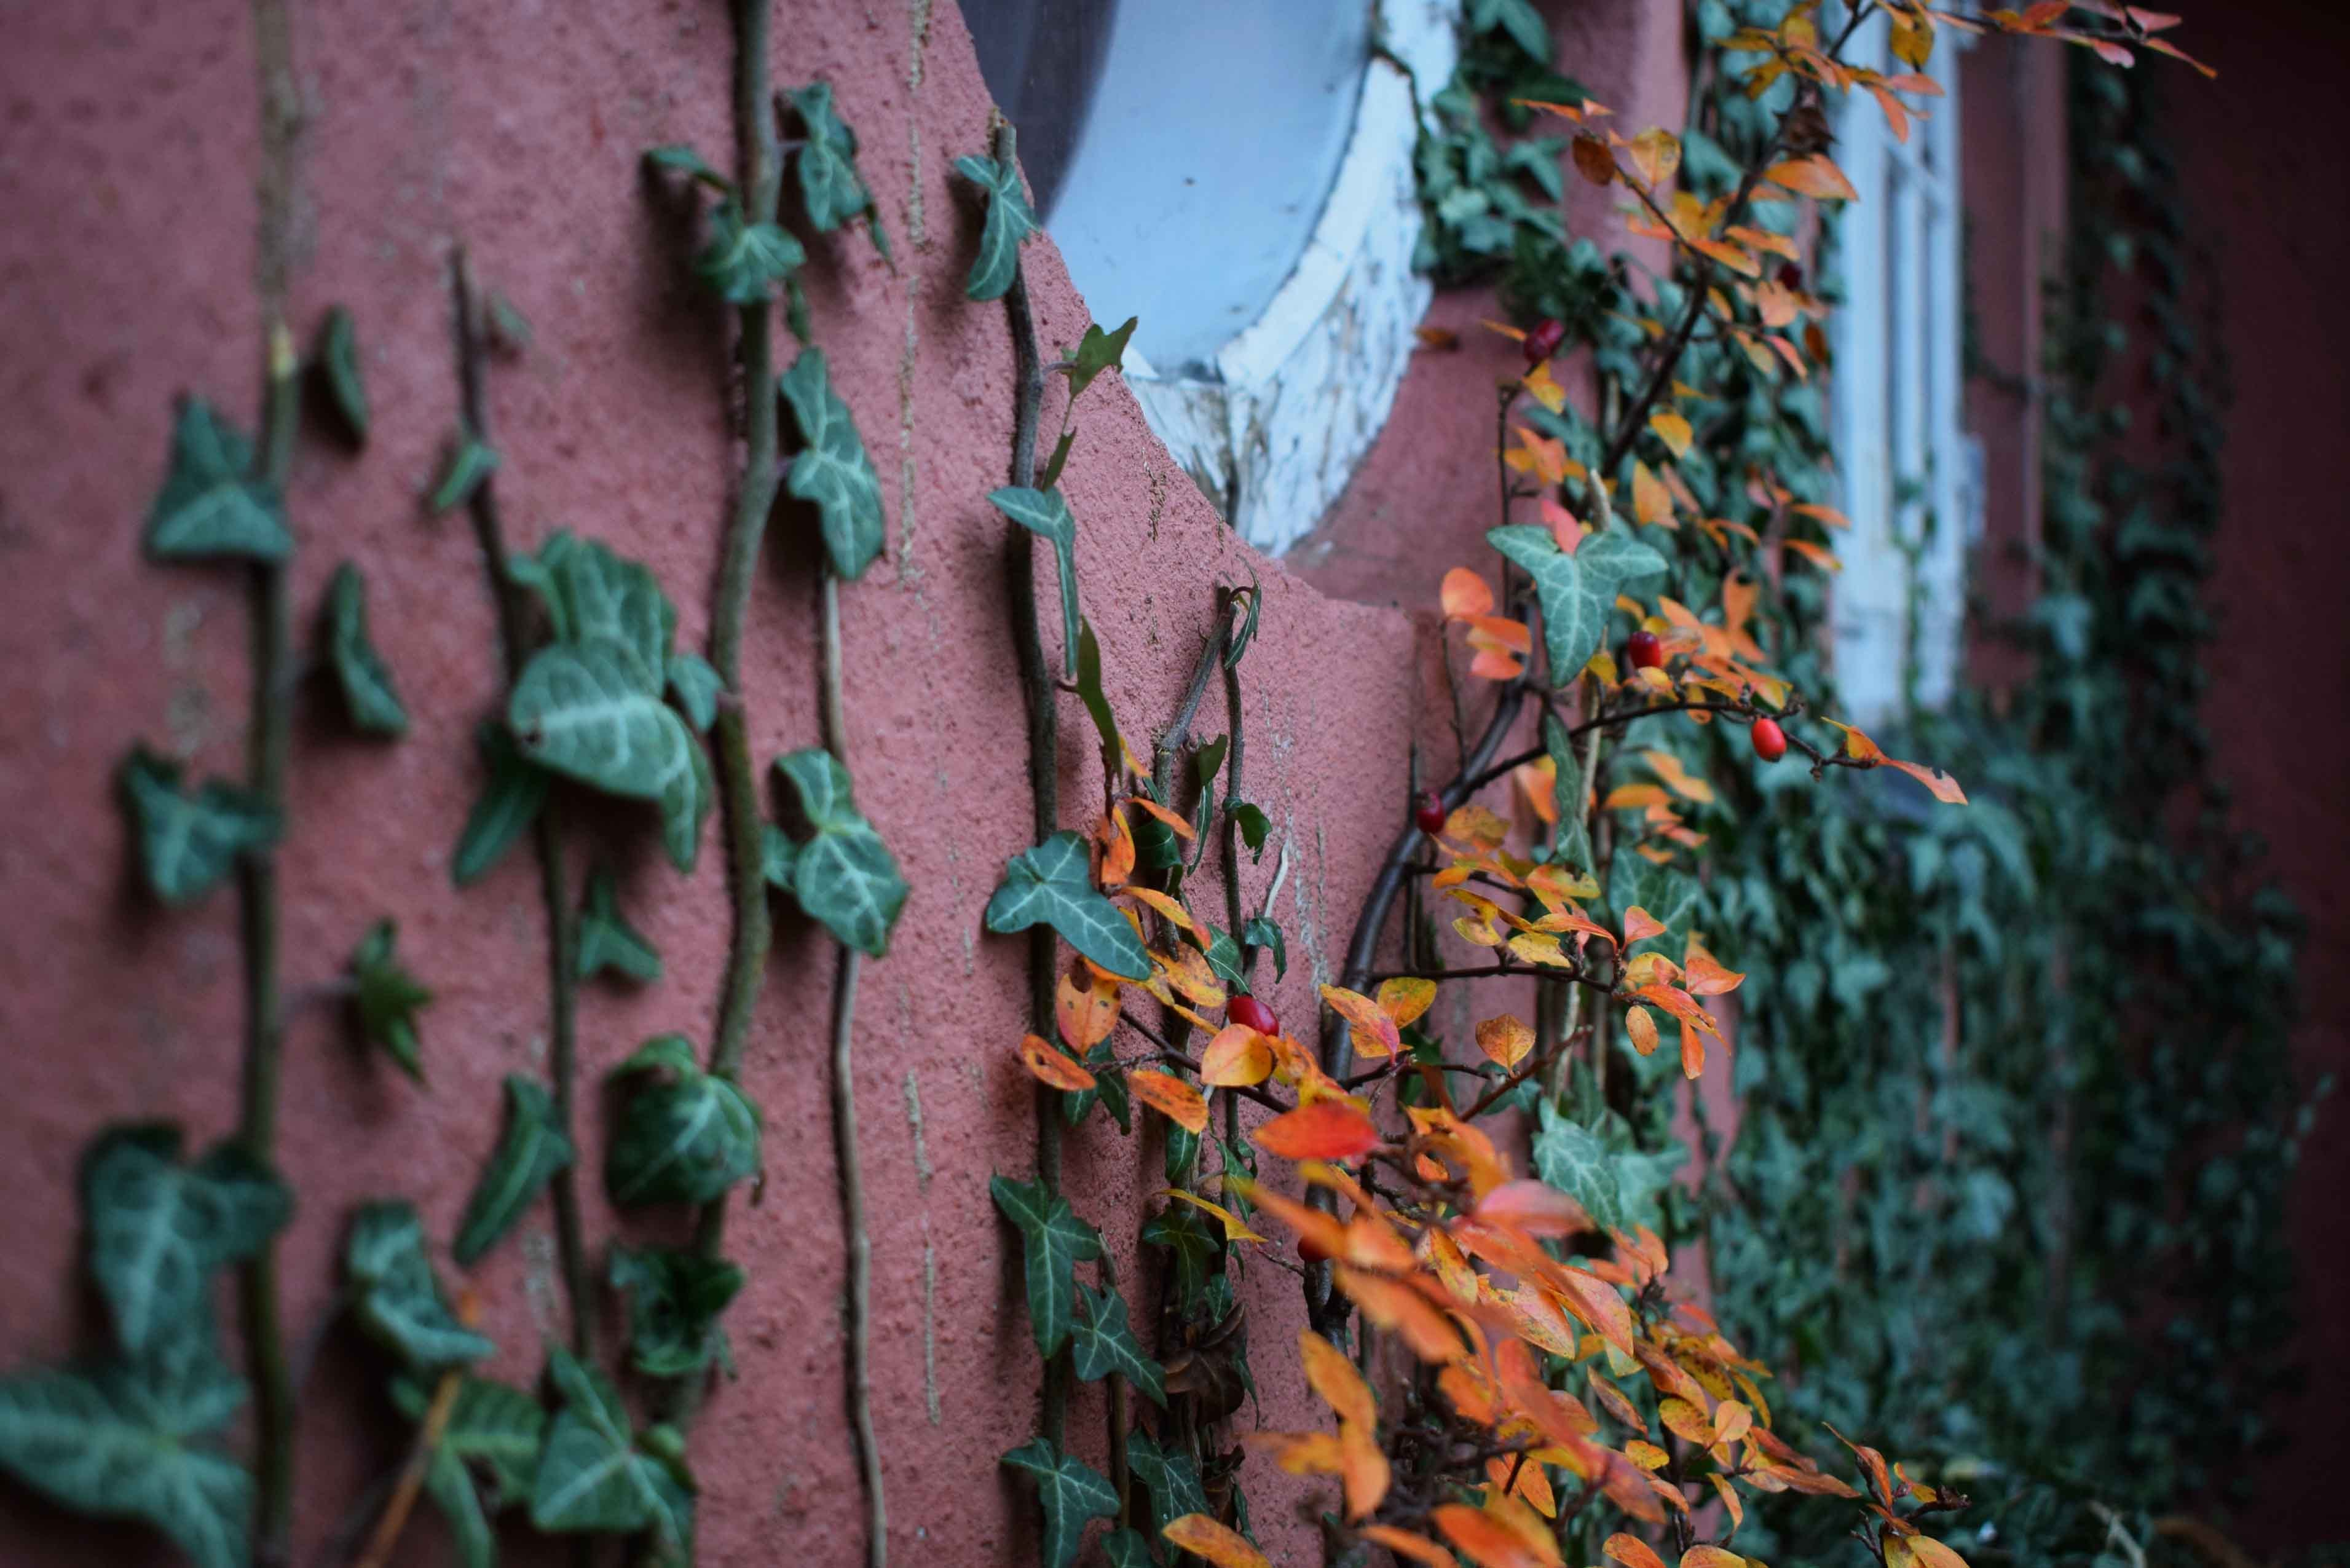 green leafed vine plants crawling on brown concrete wall at daytime